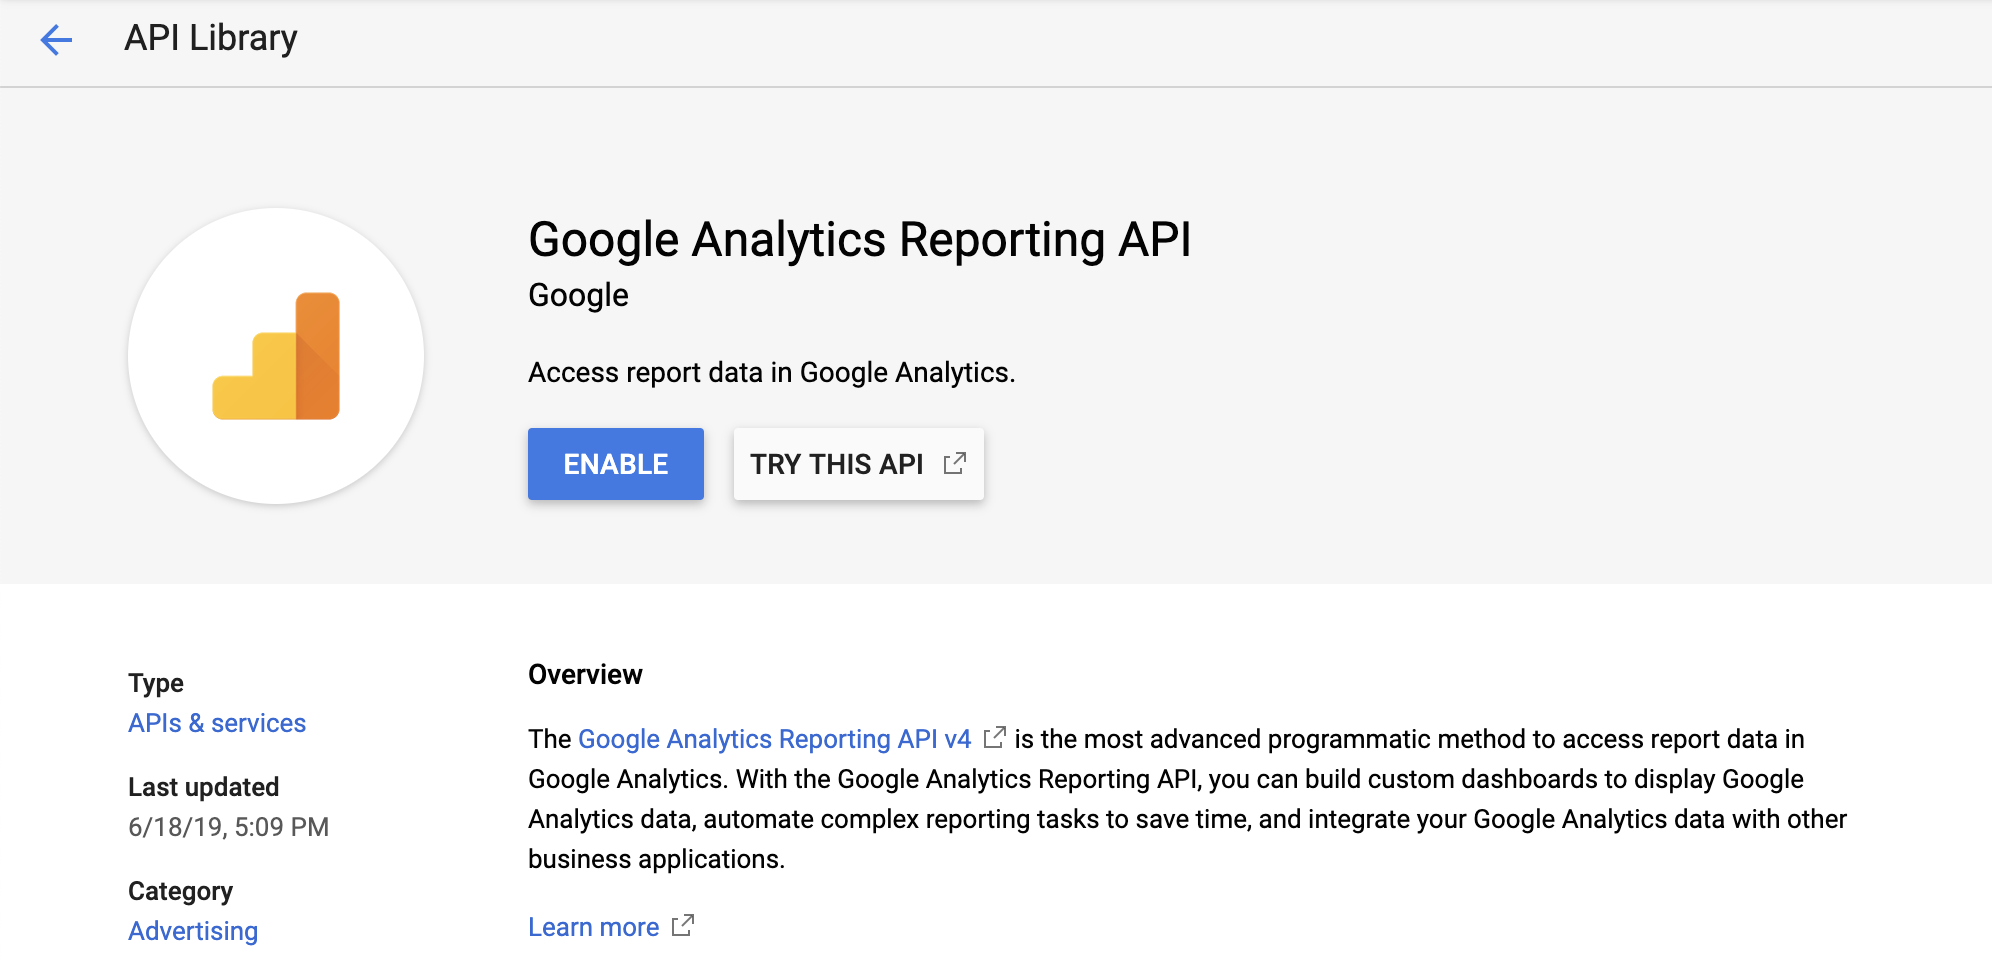 Google Analytics Reporting API